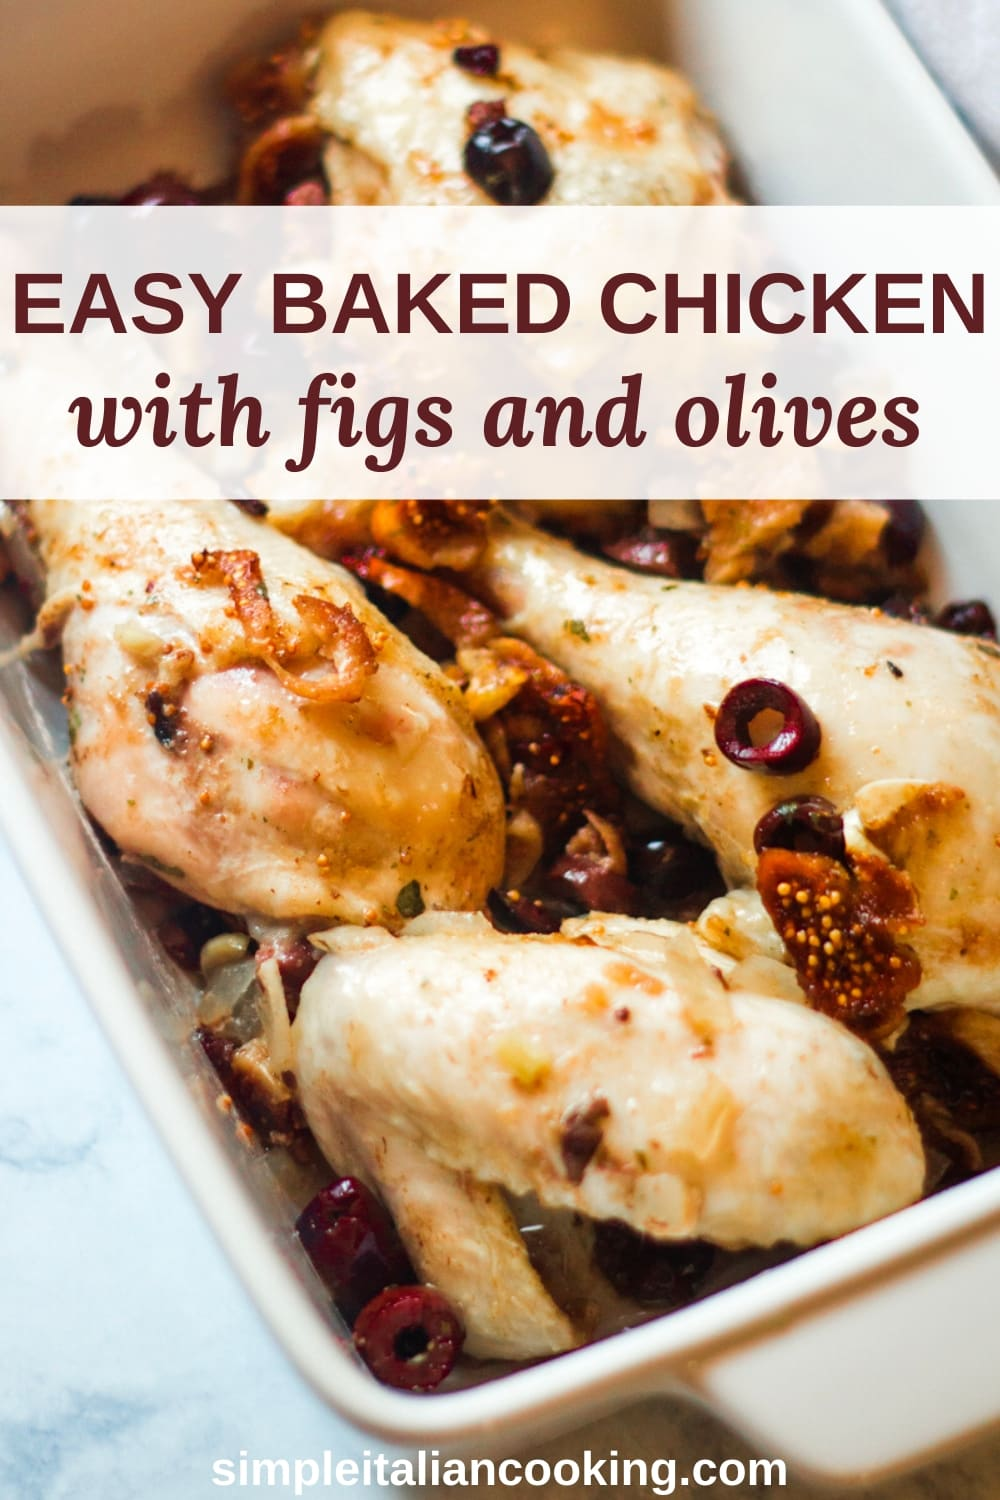 baked chicken with figs and olives recipe